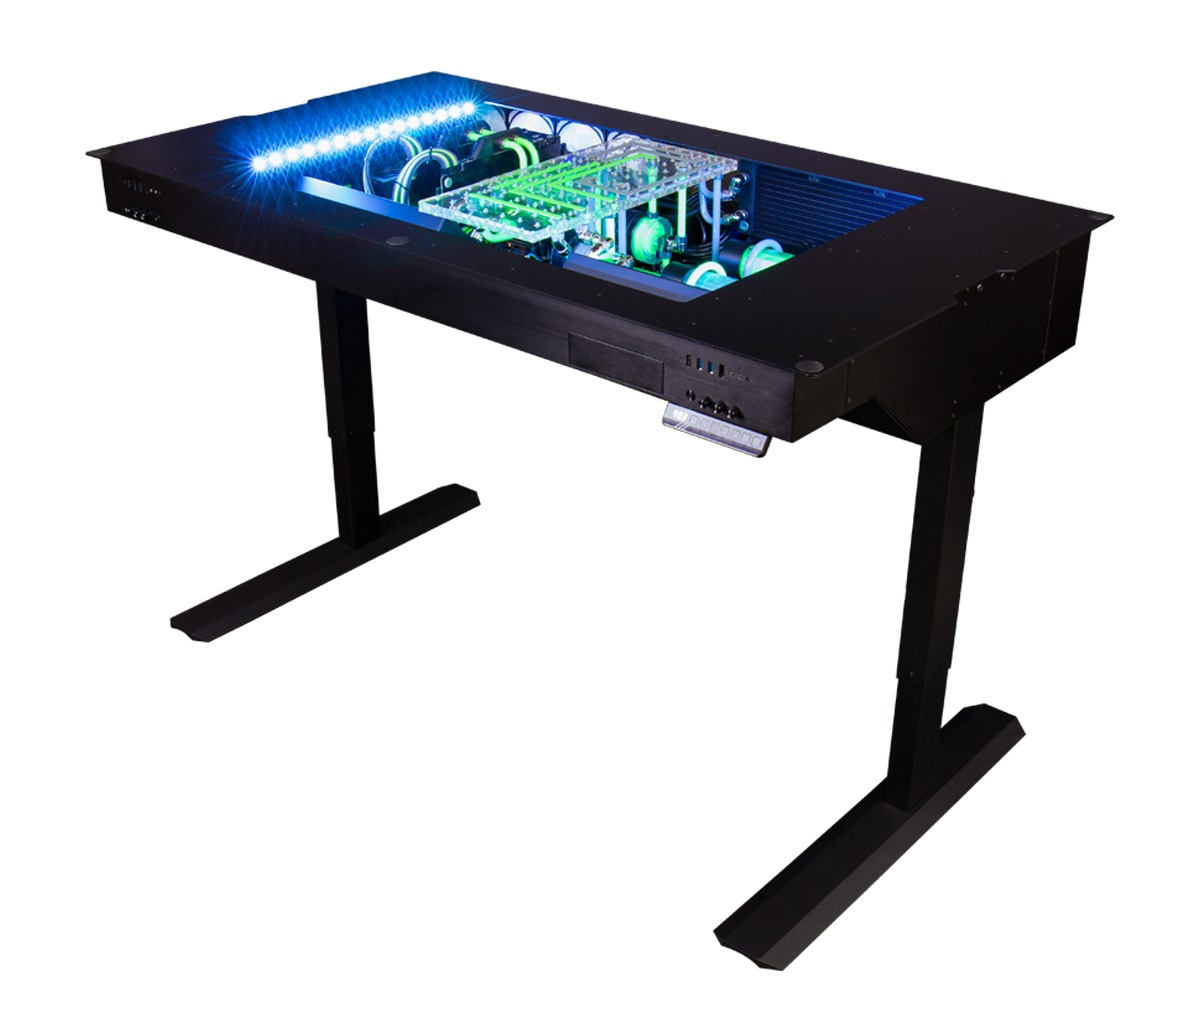 This Watercooled Gaming Desk Was Designed To Push Boundaries